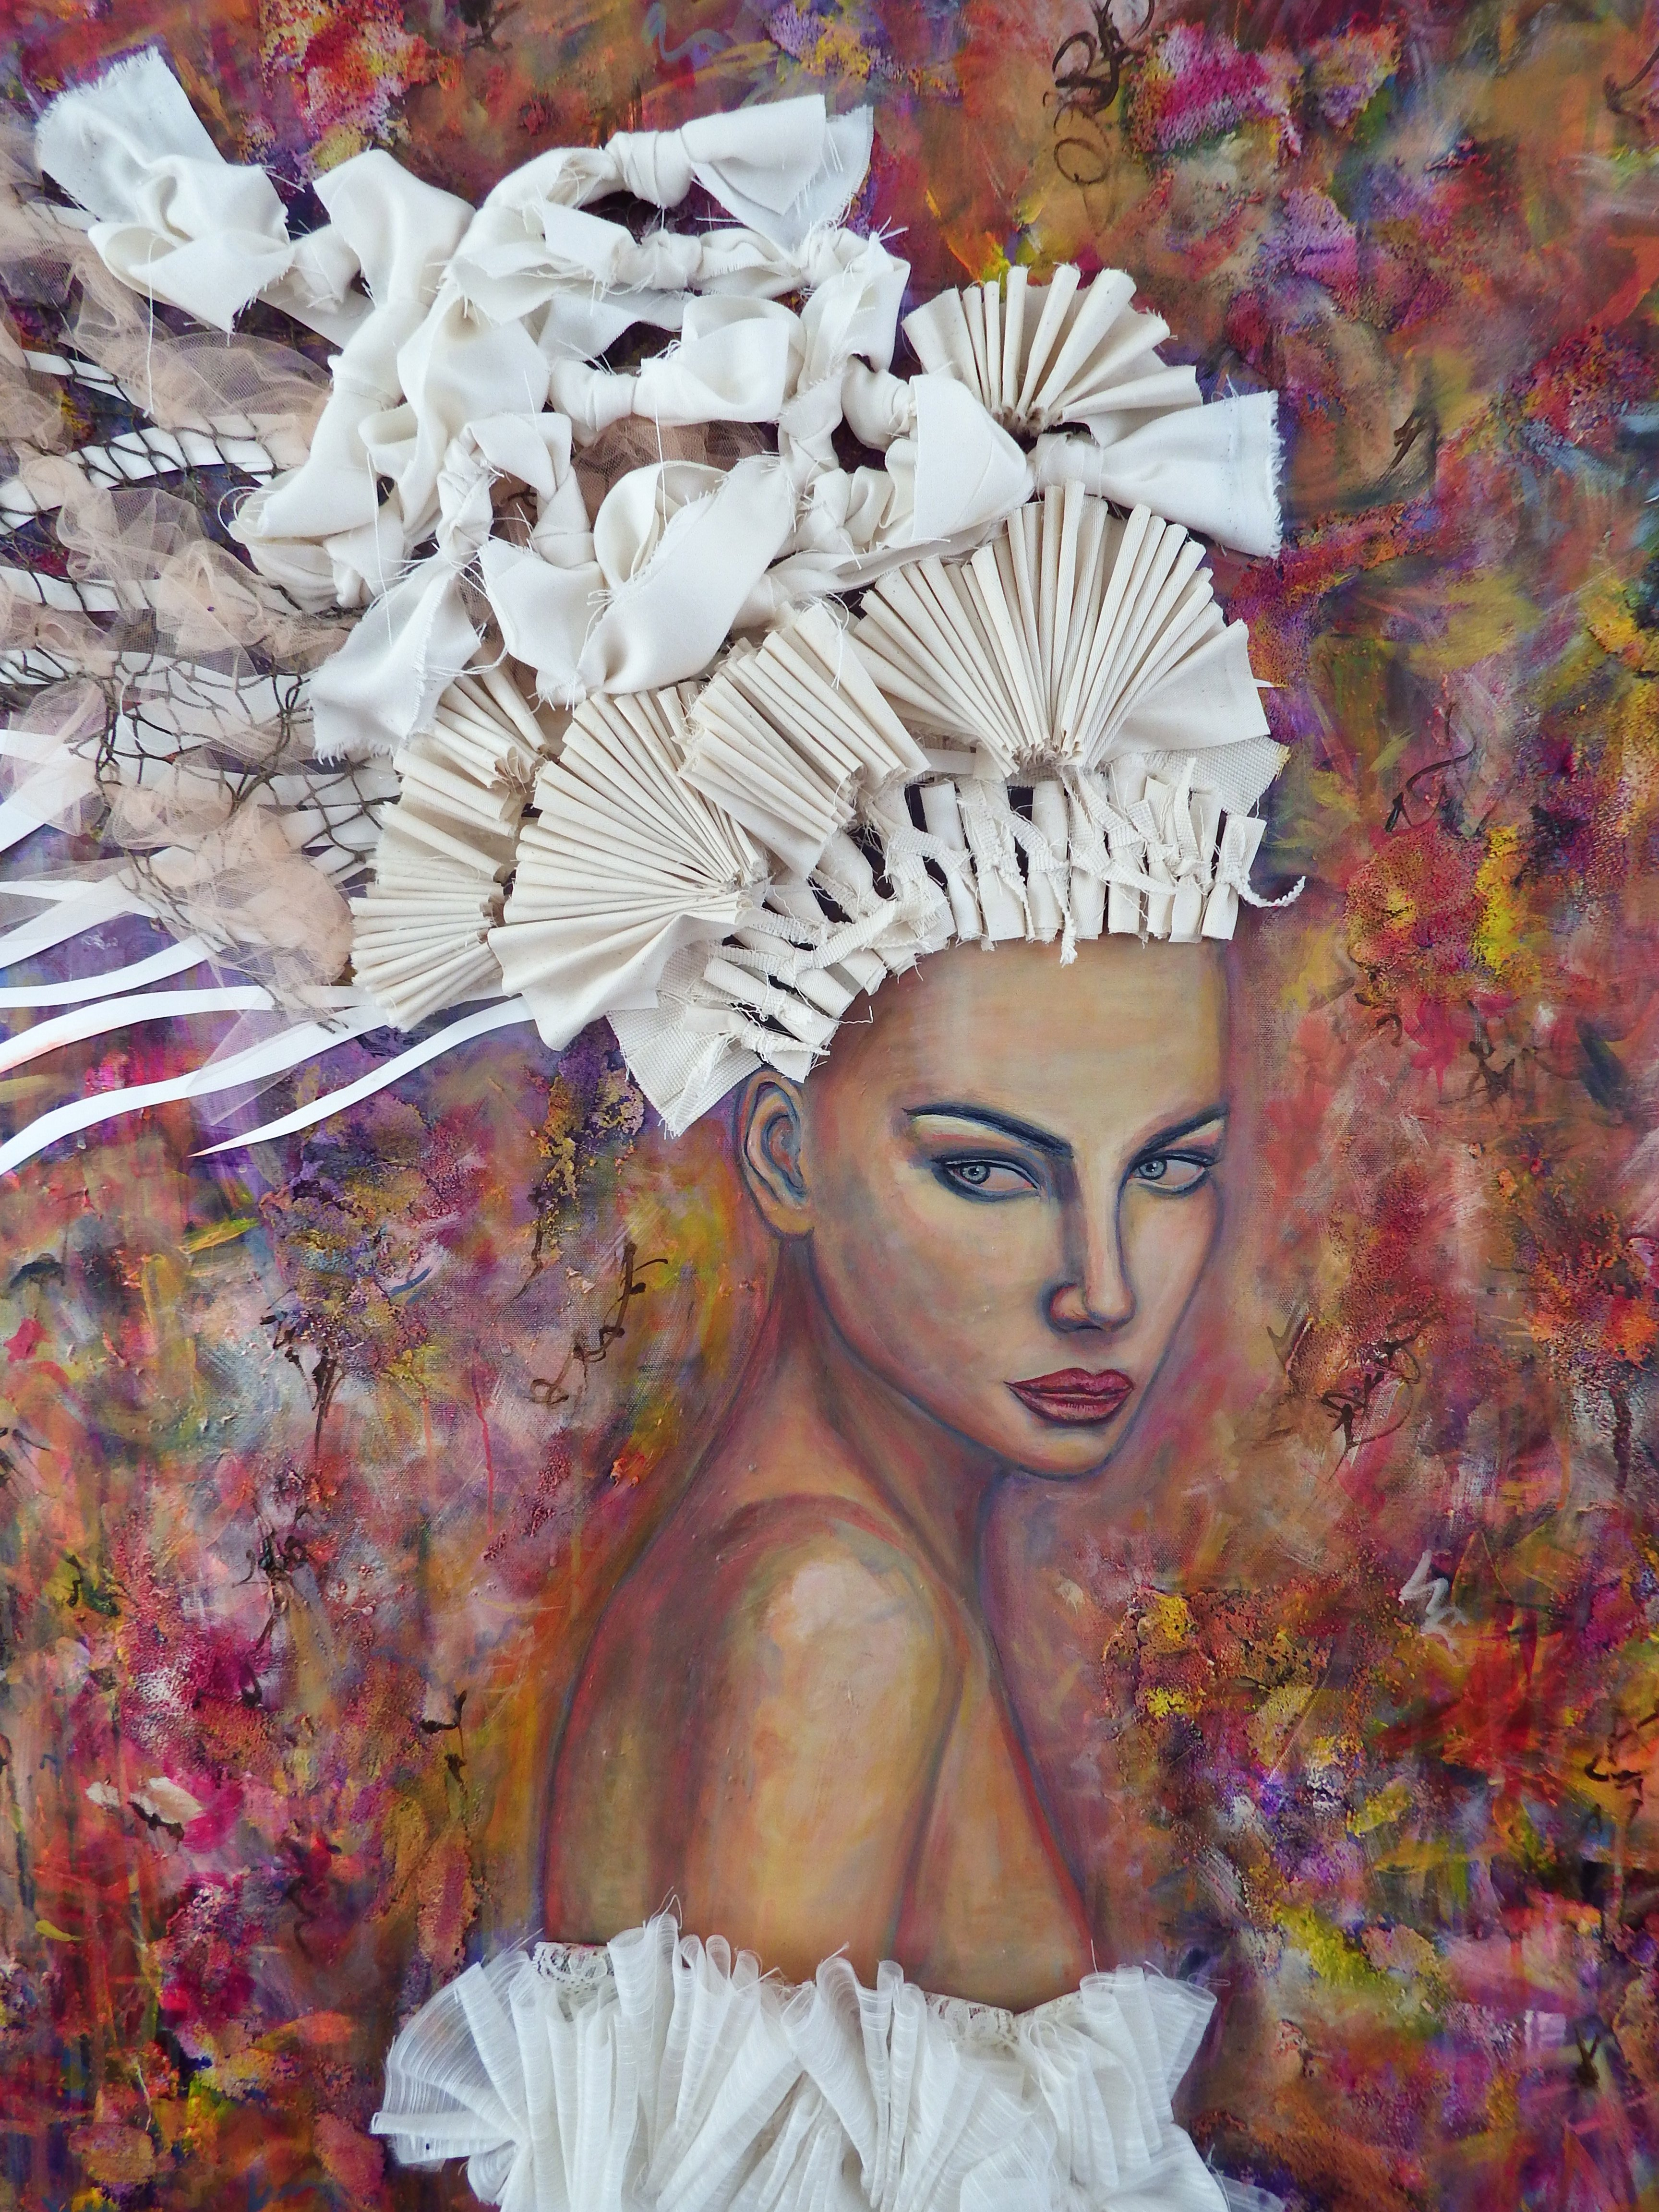 Between the Lilies, Mixed Media on Canvas, by Sabrina Brett 5